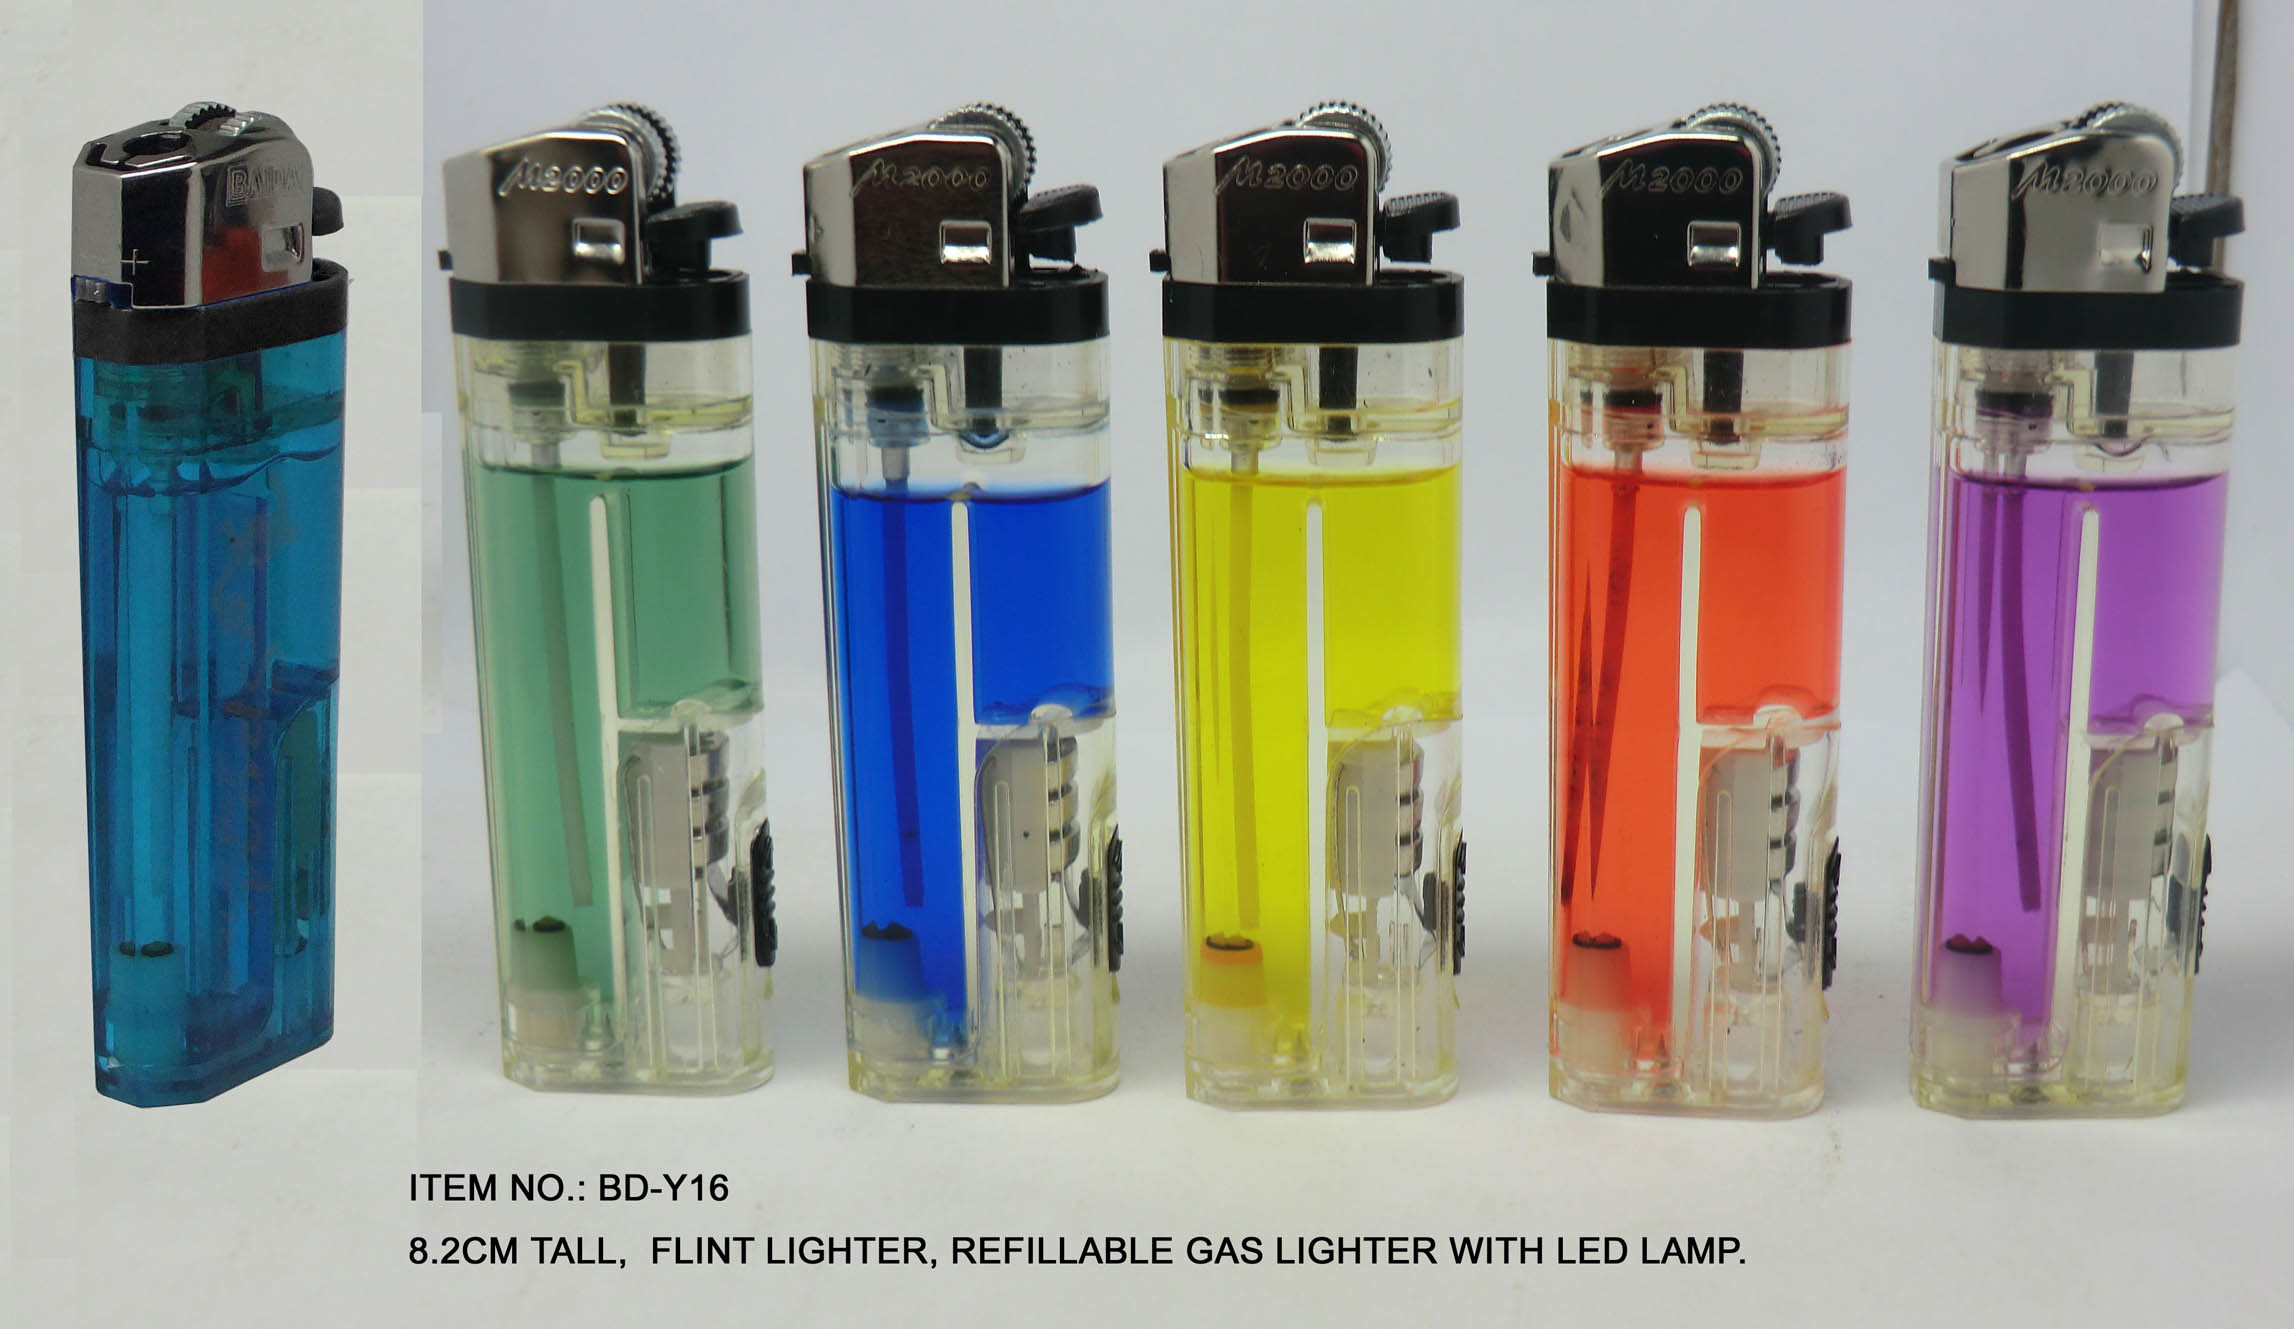 Flint Lighter, Refillable Gas Lighter With LED Light, Baida Lighter (BD-Y16)